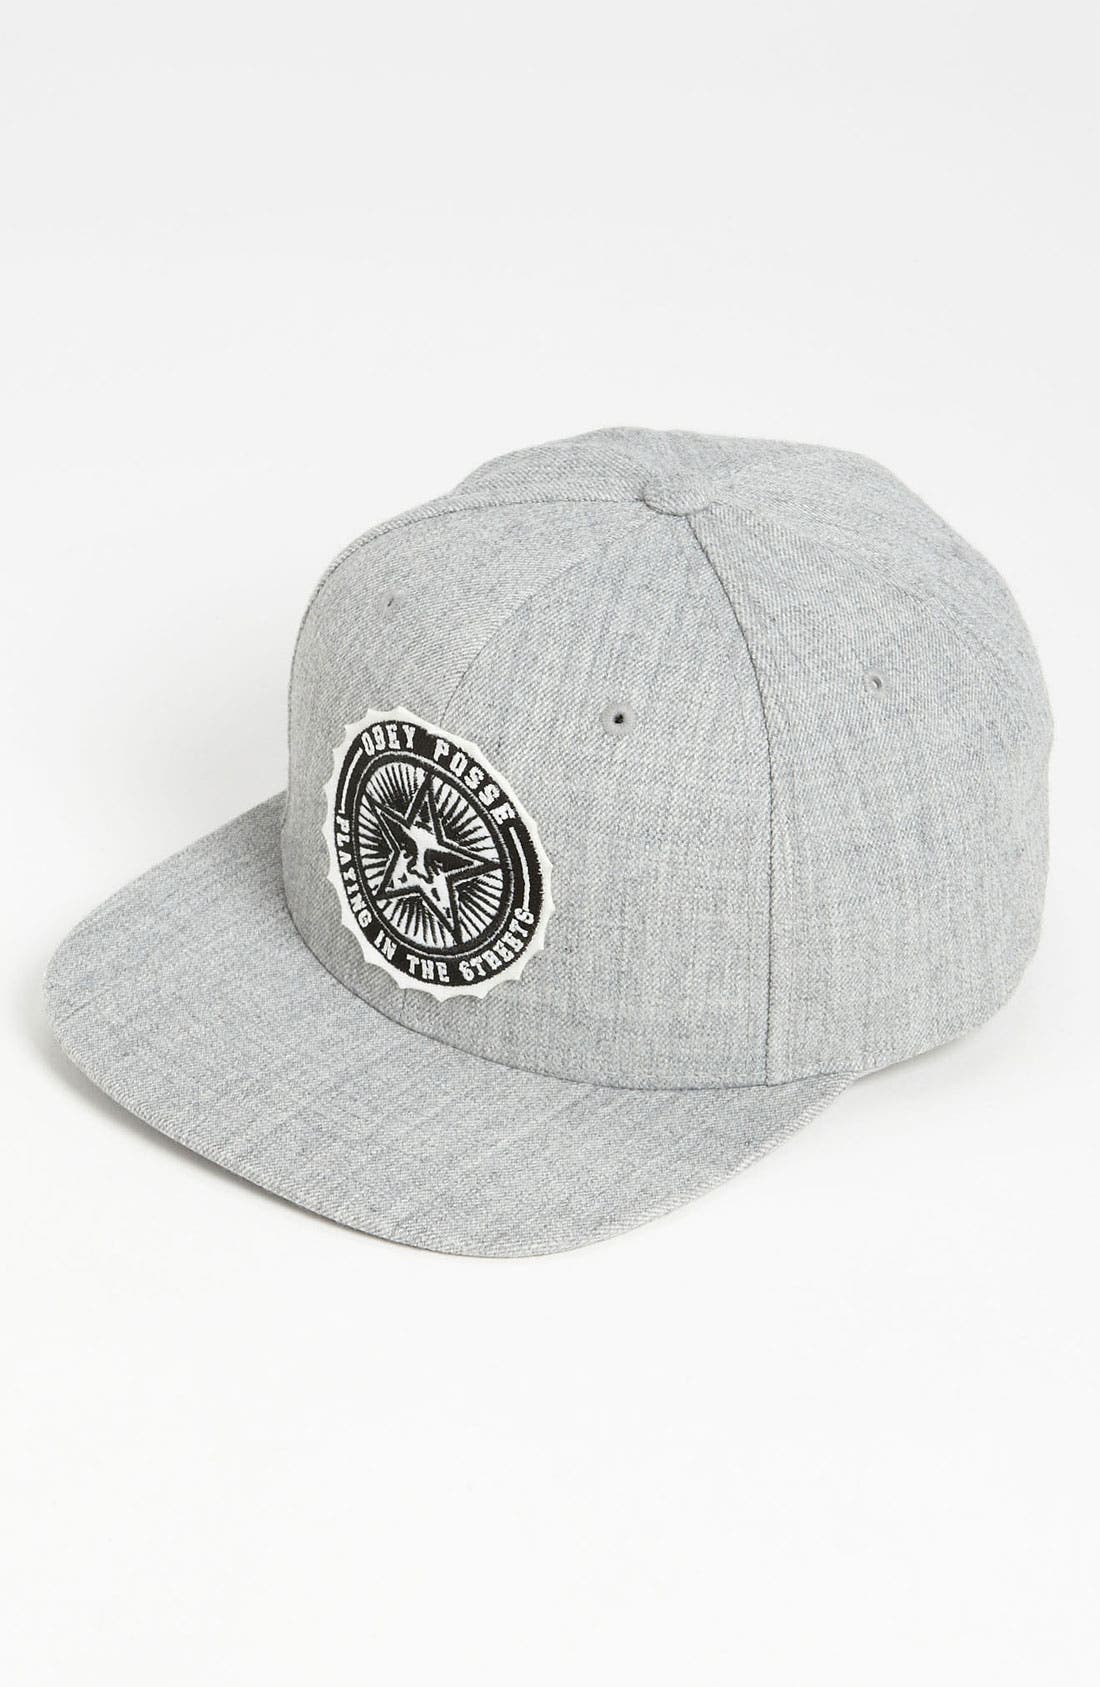 Alternate Image 1 Selected - Obey 'Pro Bowl' Snapback Baseball Cap